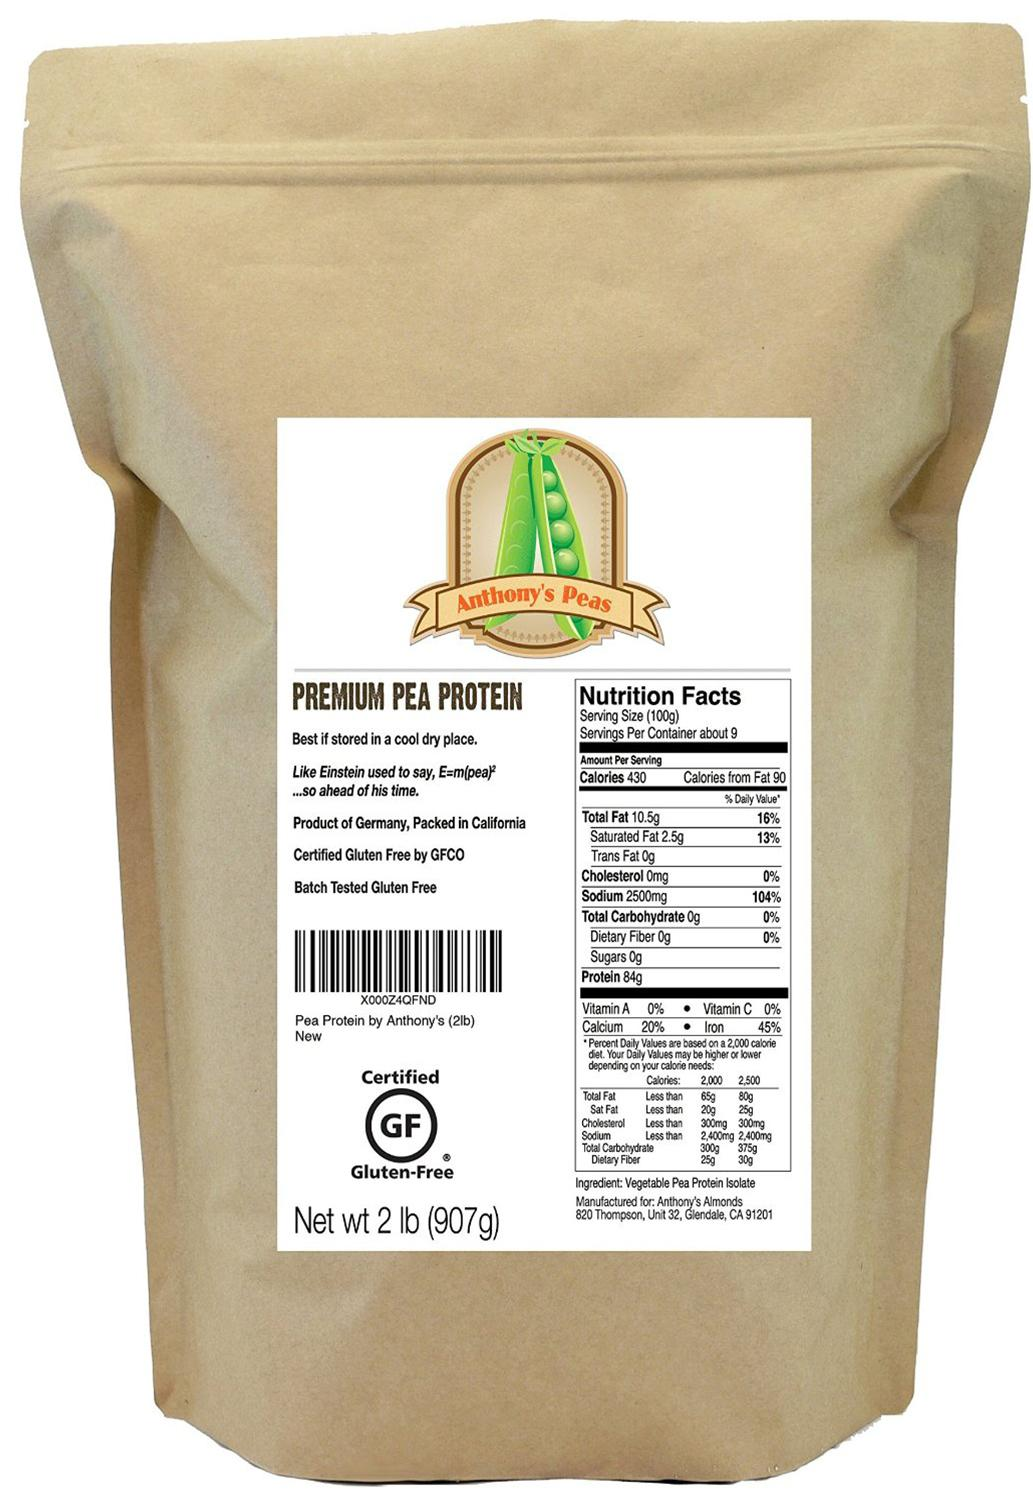 Germany by Anthony's Pea Protein Powder